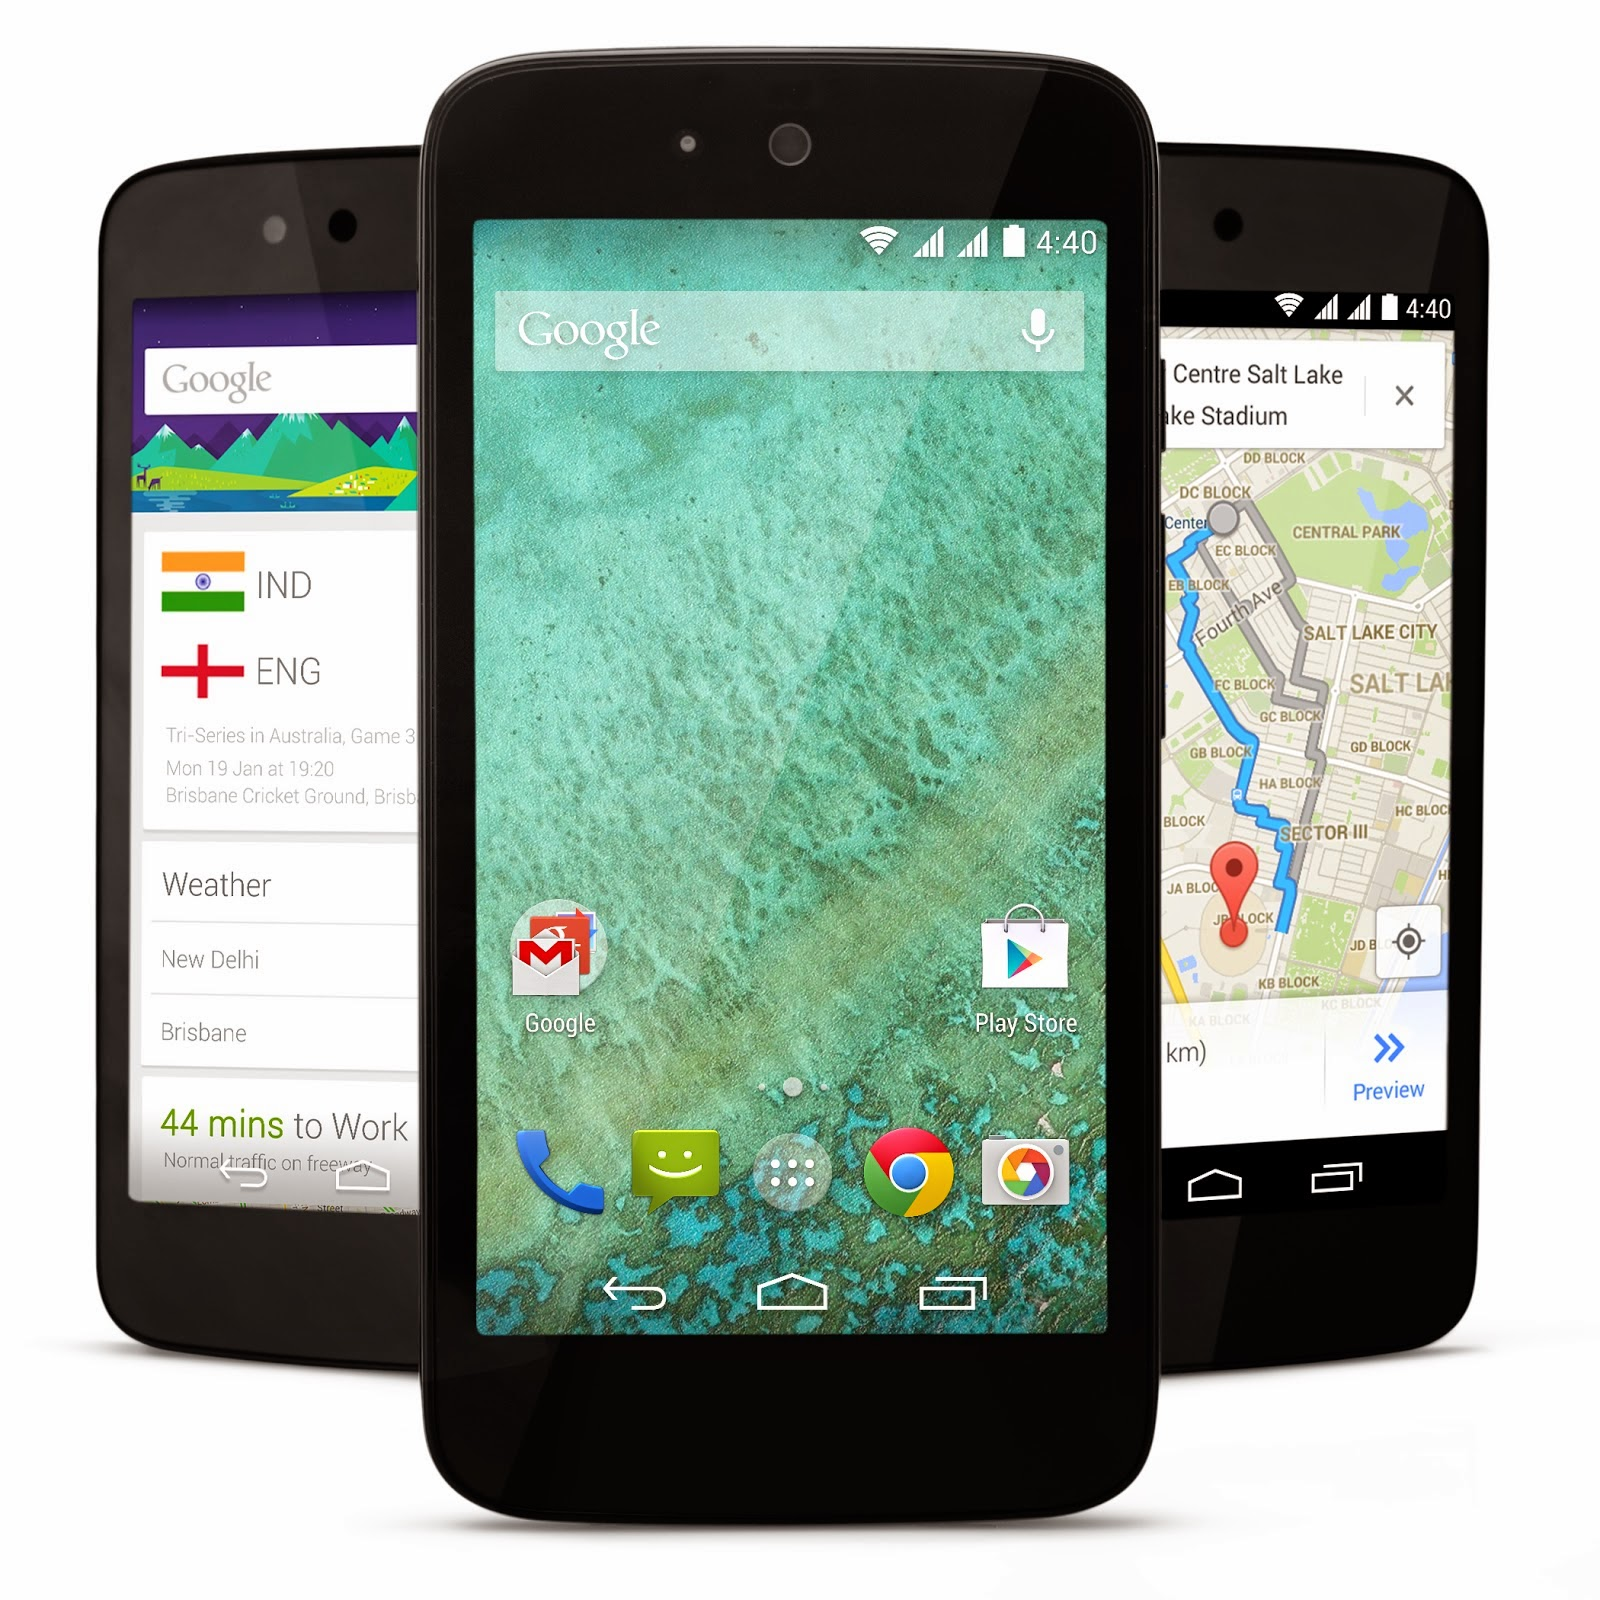 Android One devices could have free data for some apps